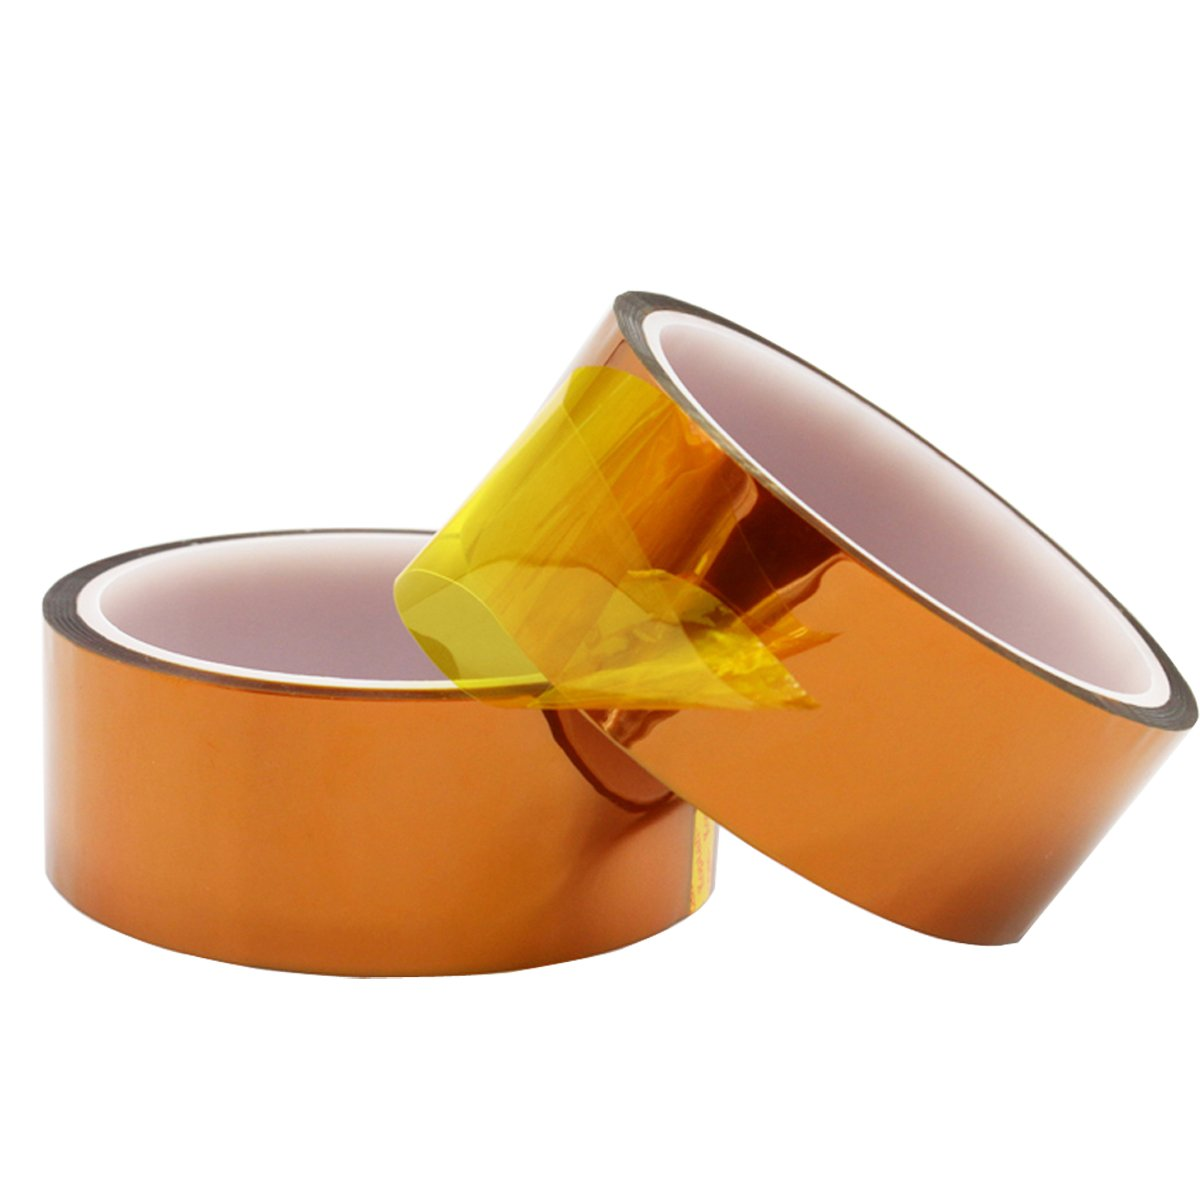 Kapton High Temperature Heat Resistant Tape Polyimide Film Adhesive Tape for Electronic Industry PCB polypropylene and Mobile phone battery, Kaifa (1.2 in X 108 ft)